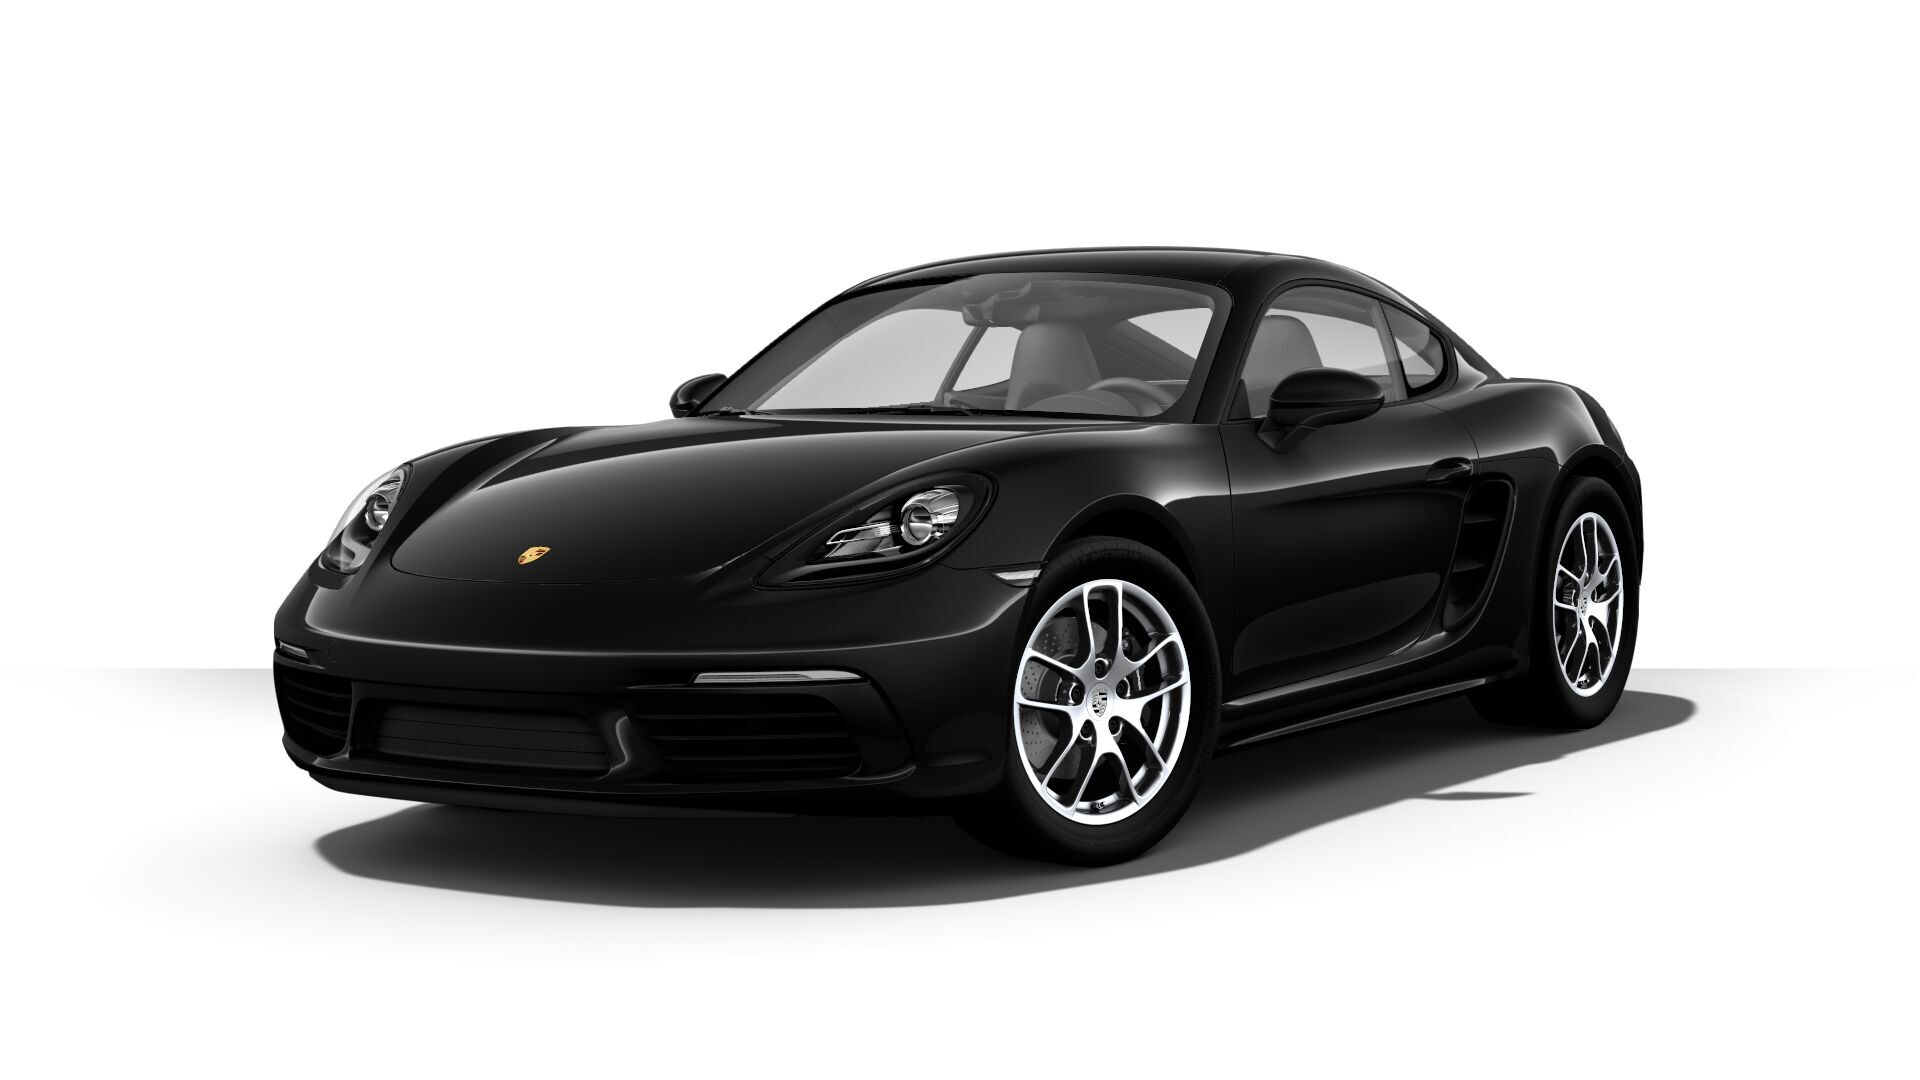 New 2020 Porsche 718 Cayman | Porsche Exchange